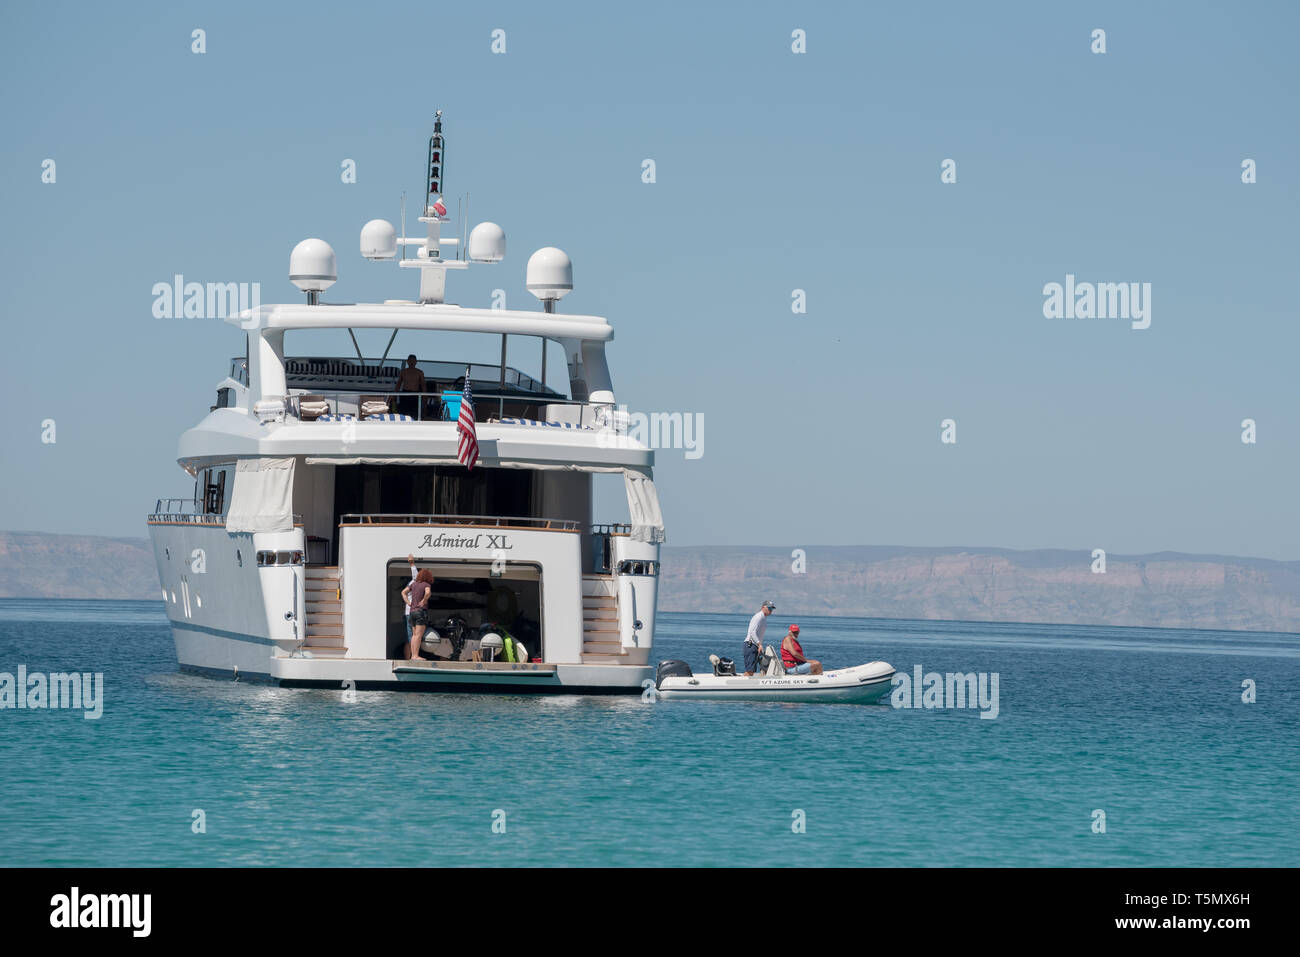 Dinghy leaving large private yacht in the Gulf of California, Baja California Sur, Mexico. - Stock Image